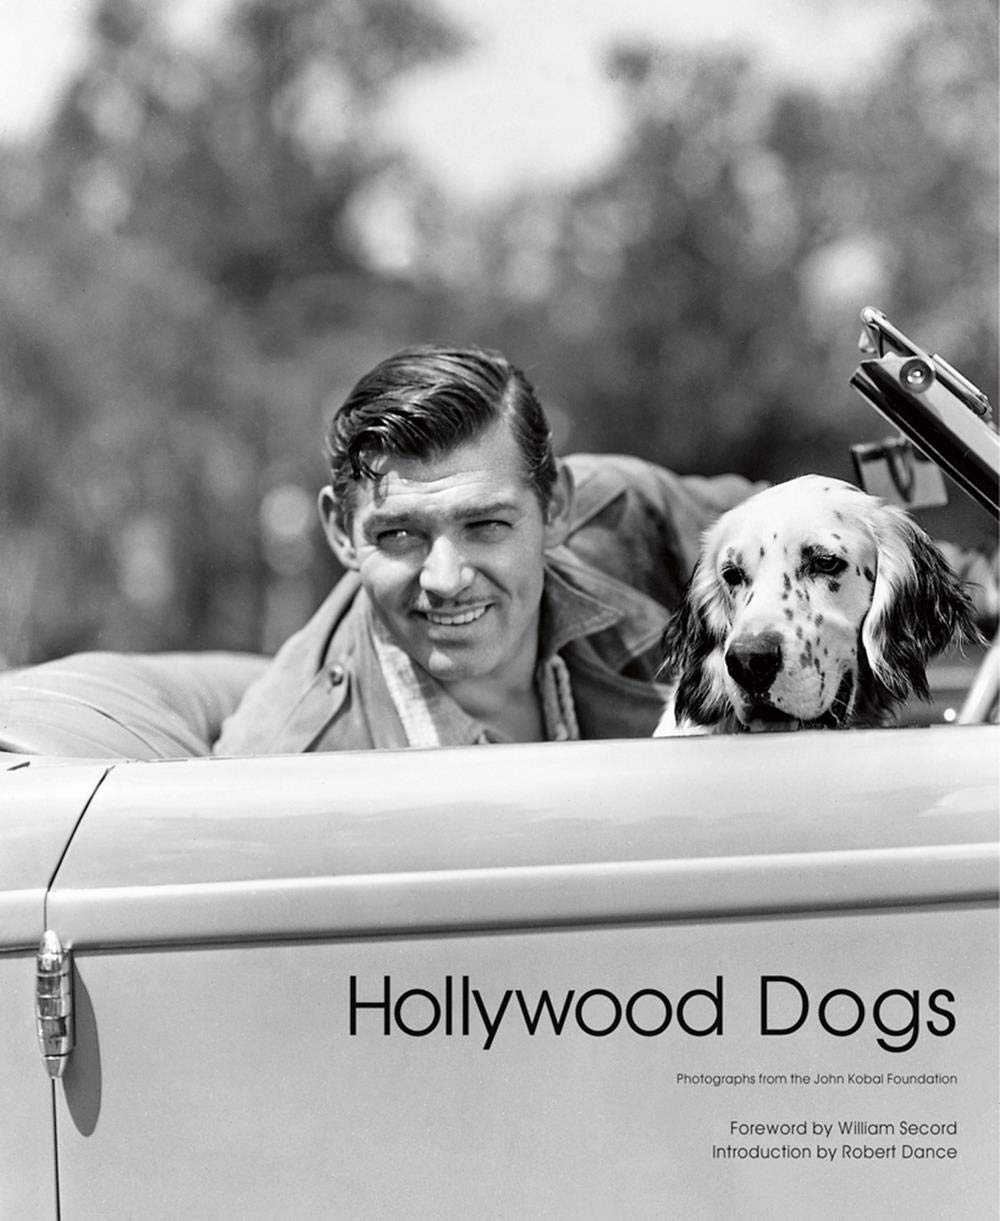 Hollywood Dogs thumbnail